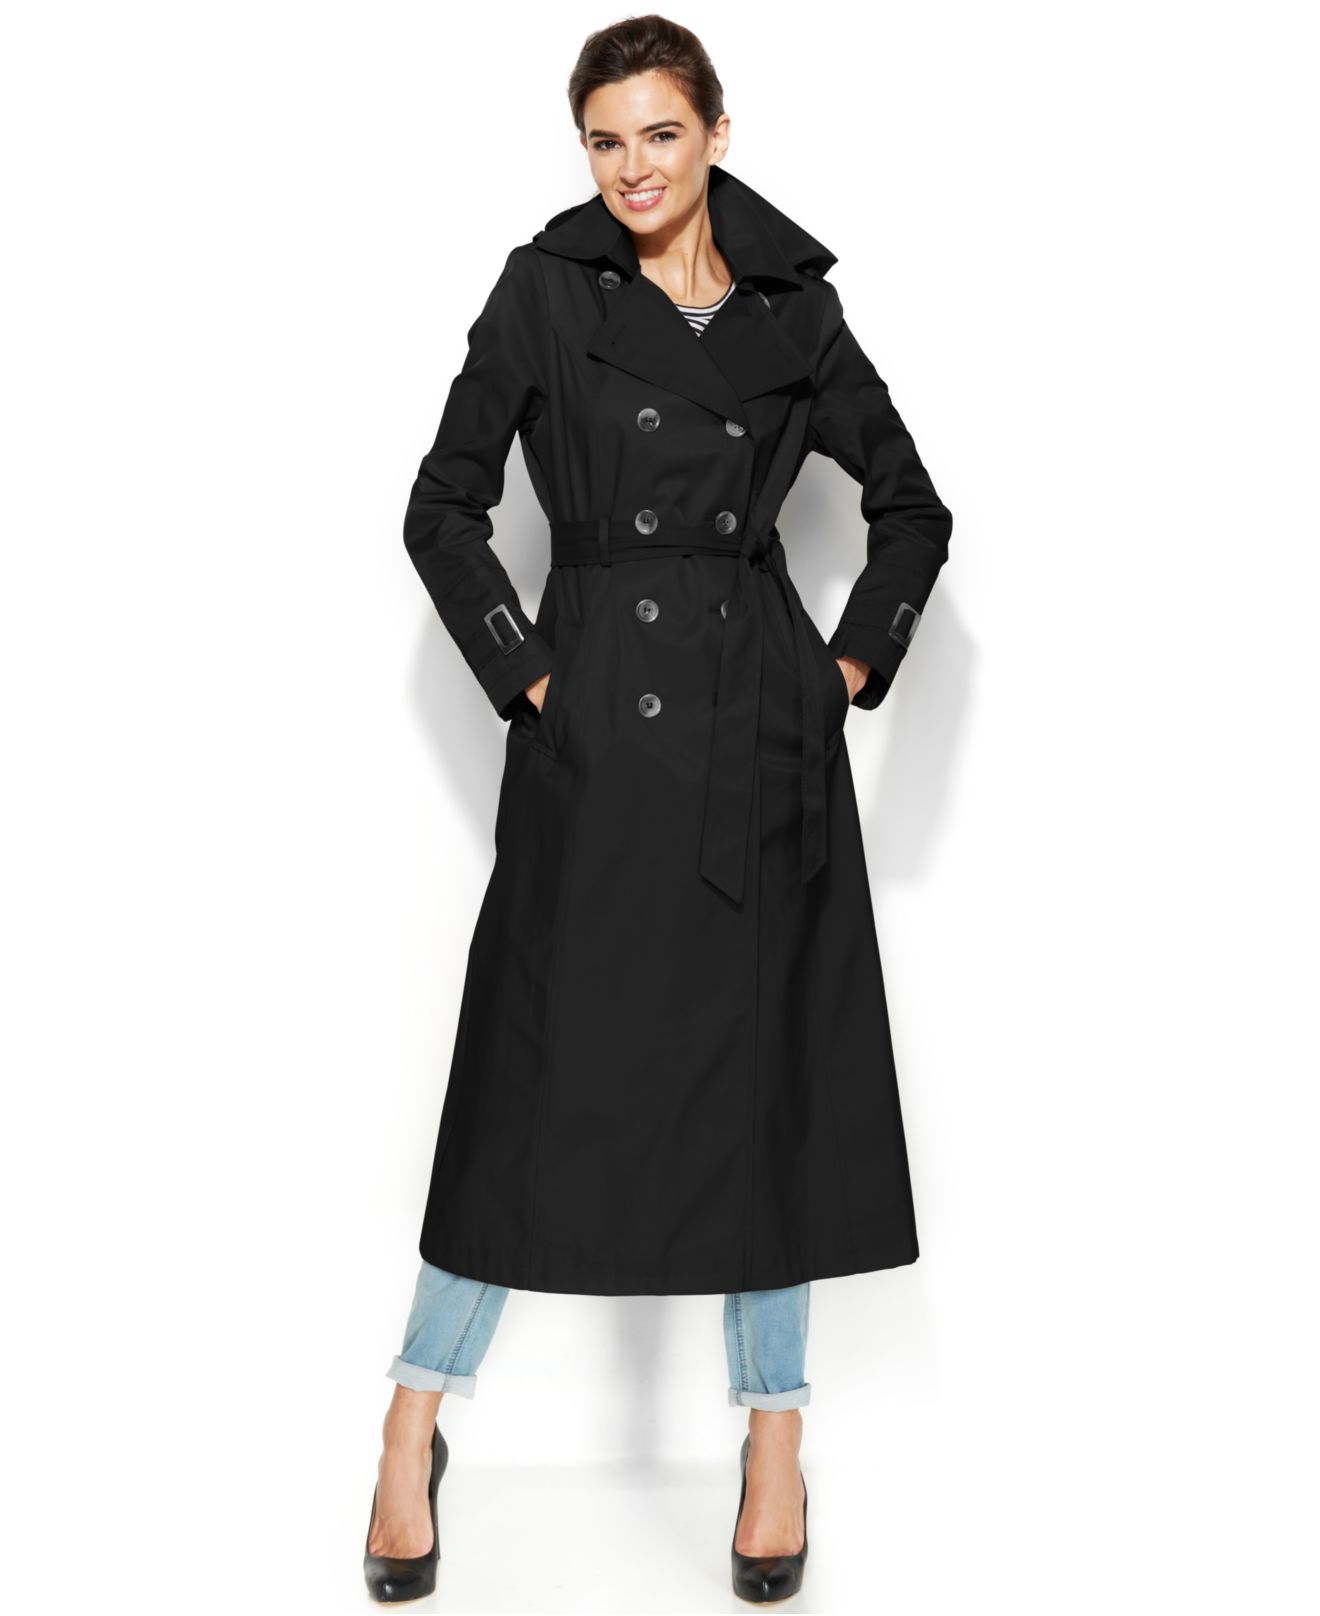 Dkny Hooded Double-Breasted Maxi Trench Coat in Black